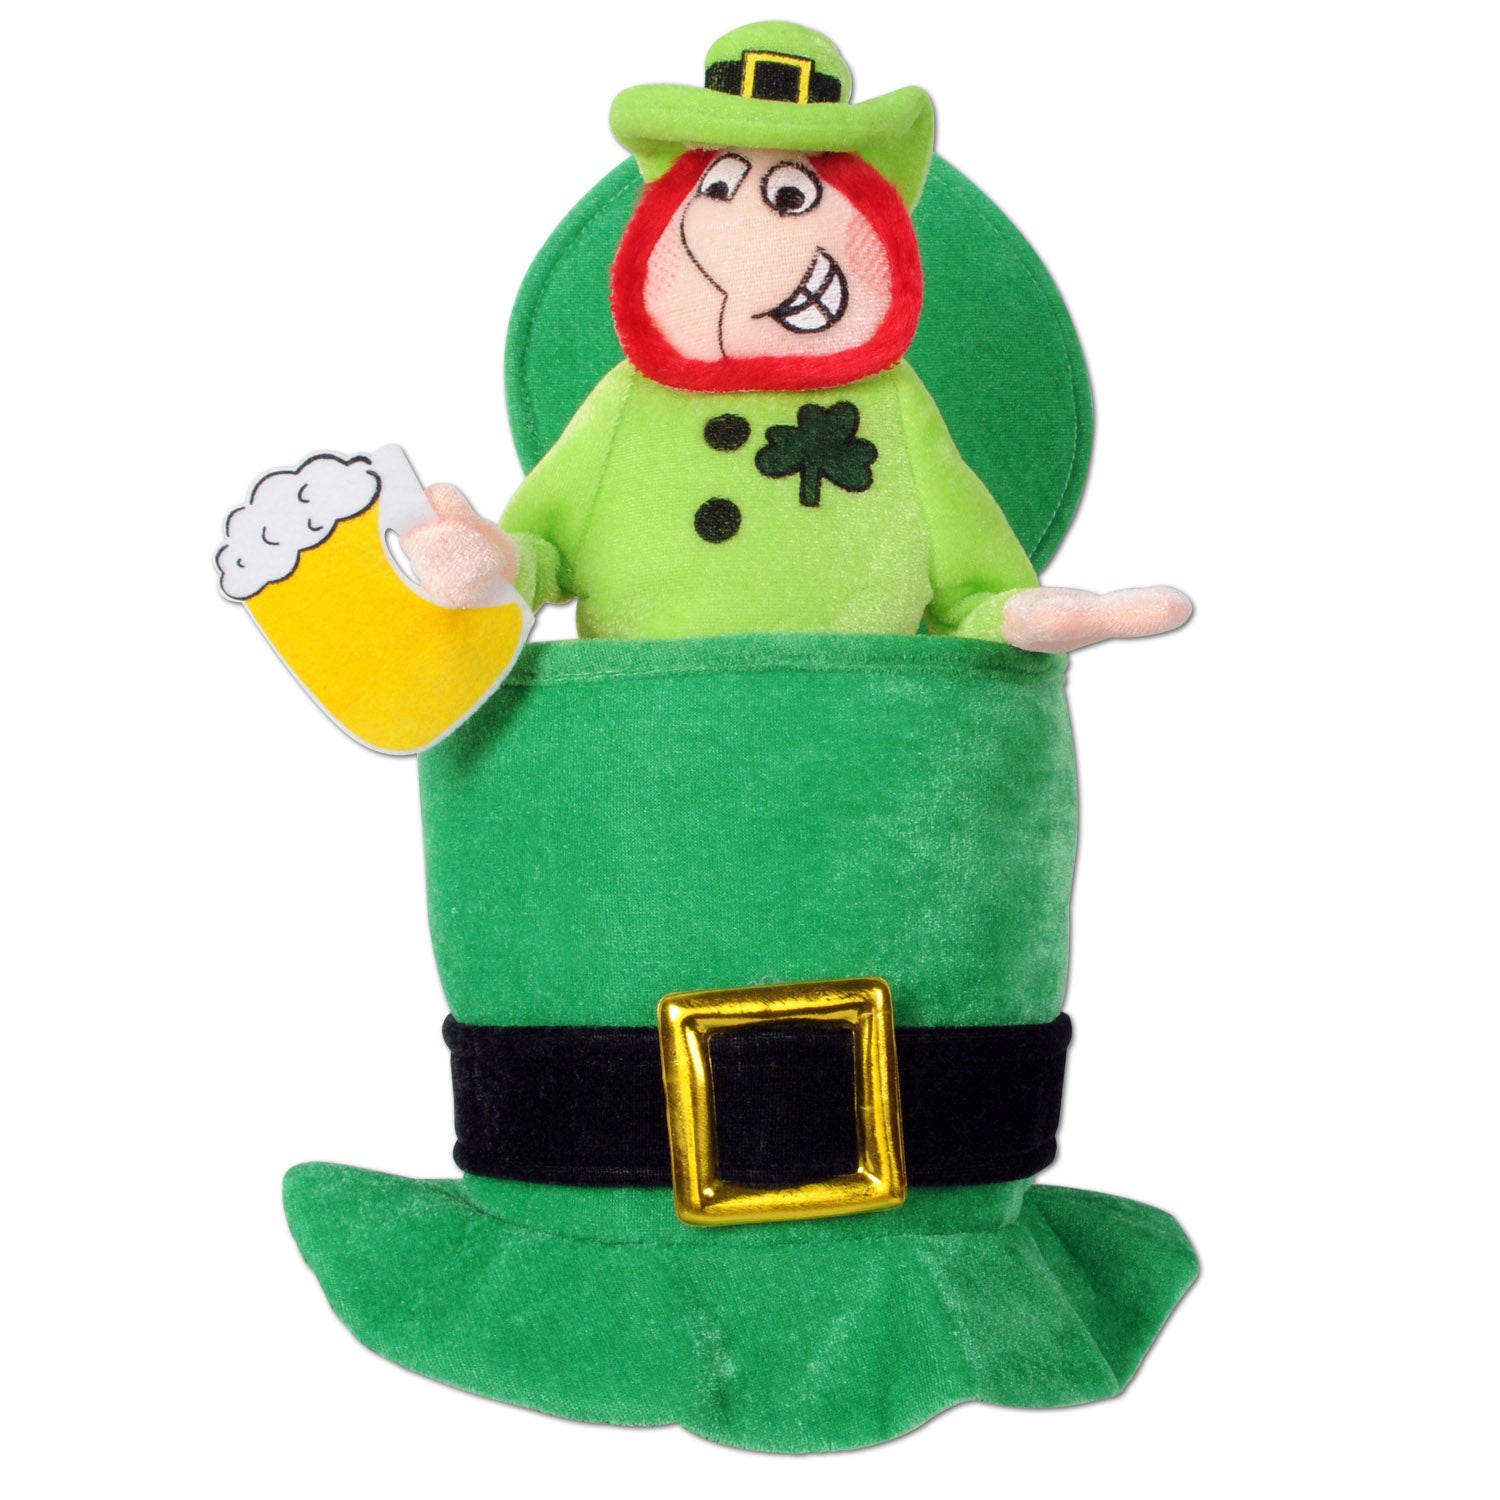 Leprechaun Hat by Beistle - St. Patricks Day Theme Decorations